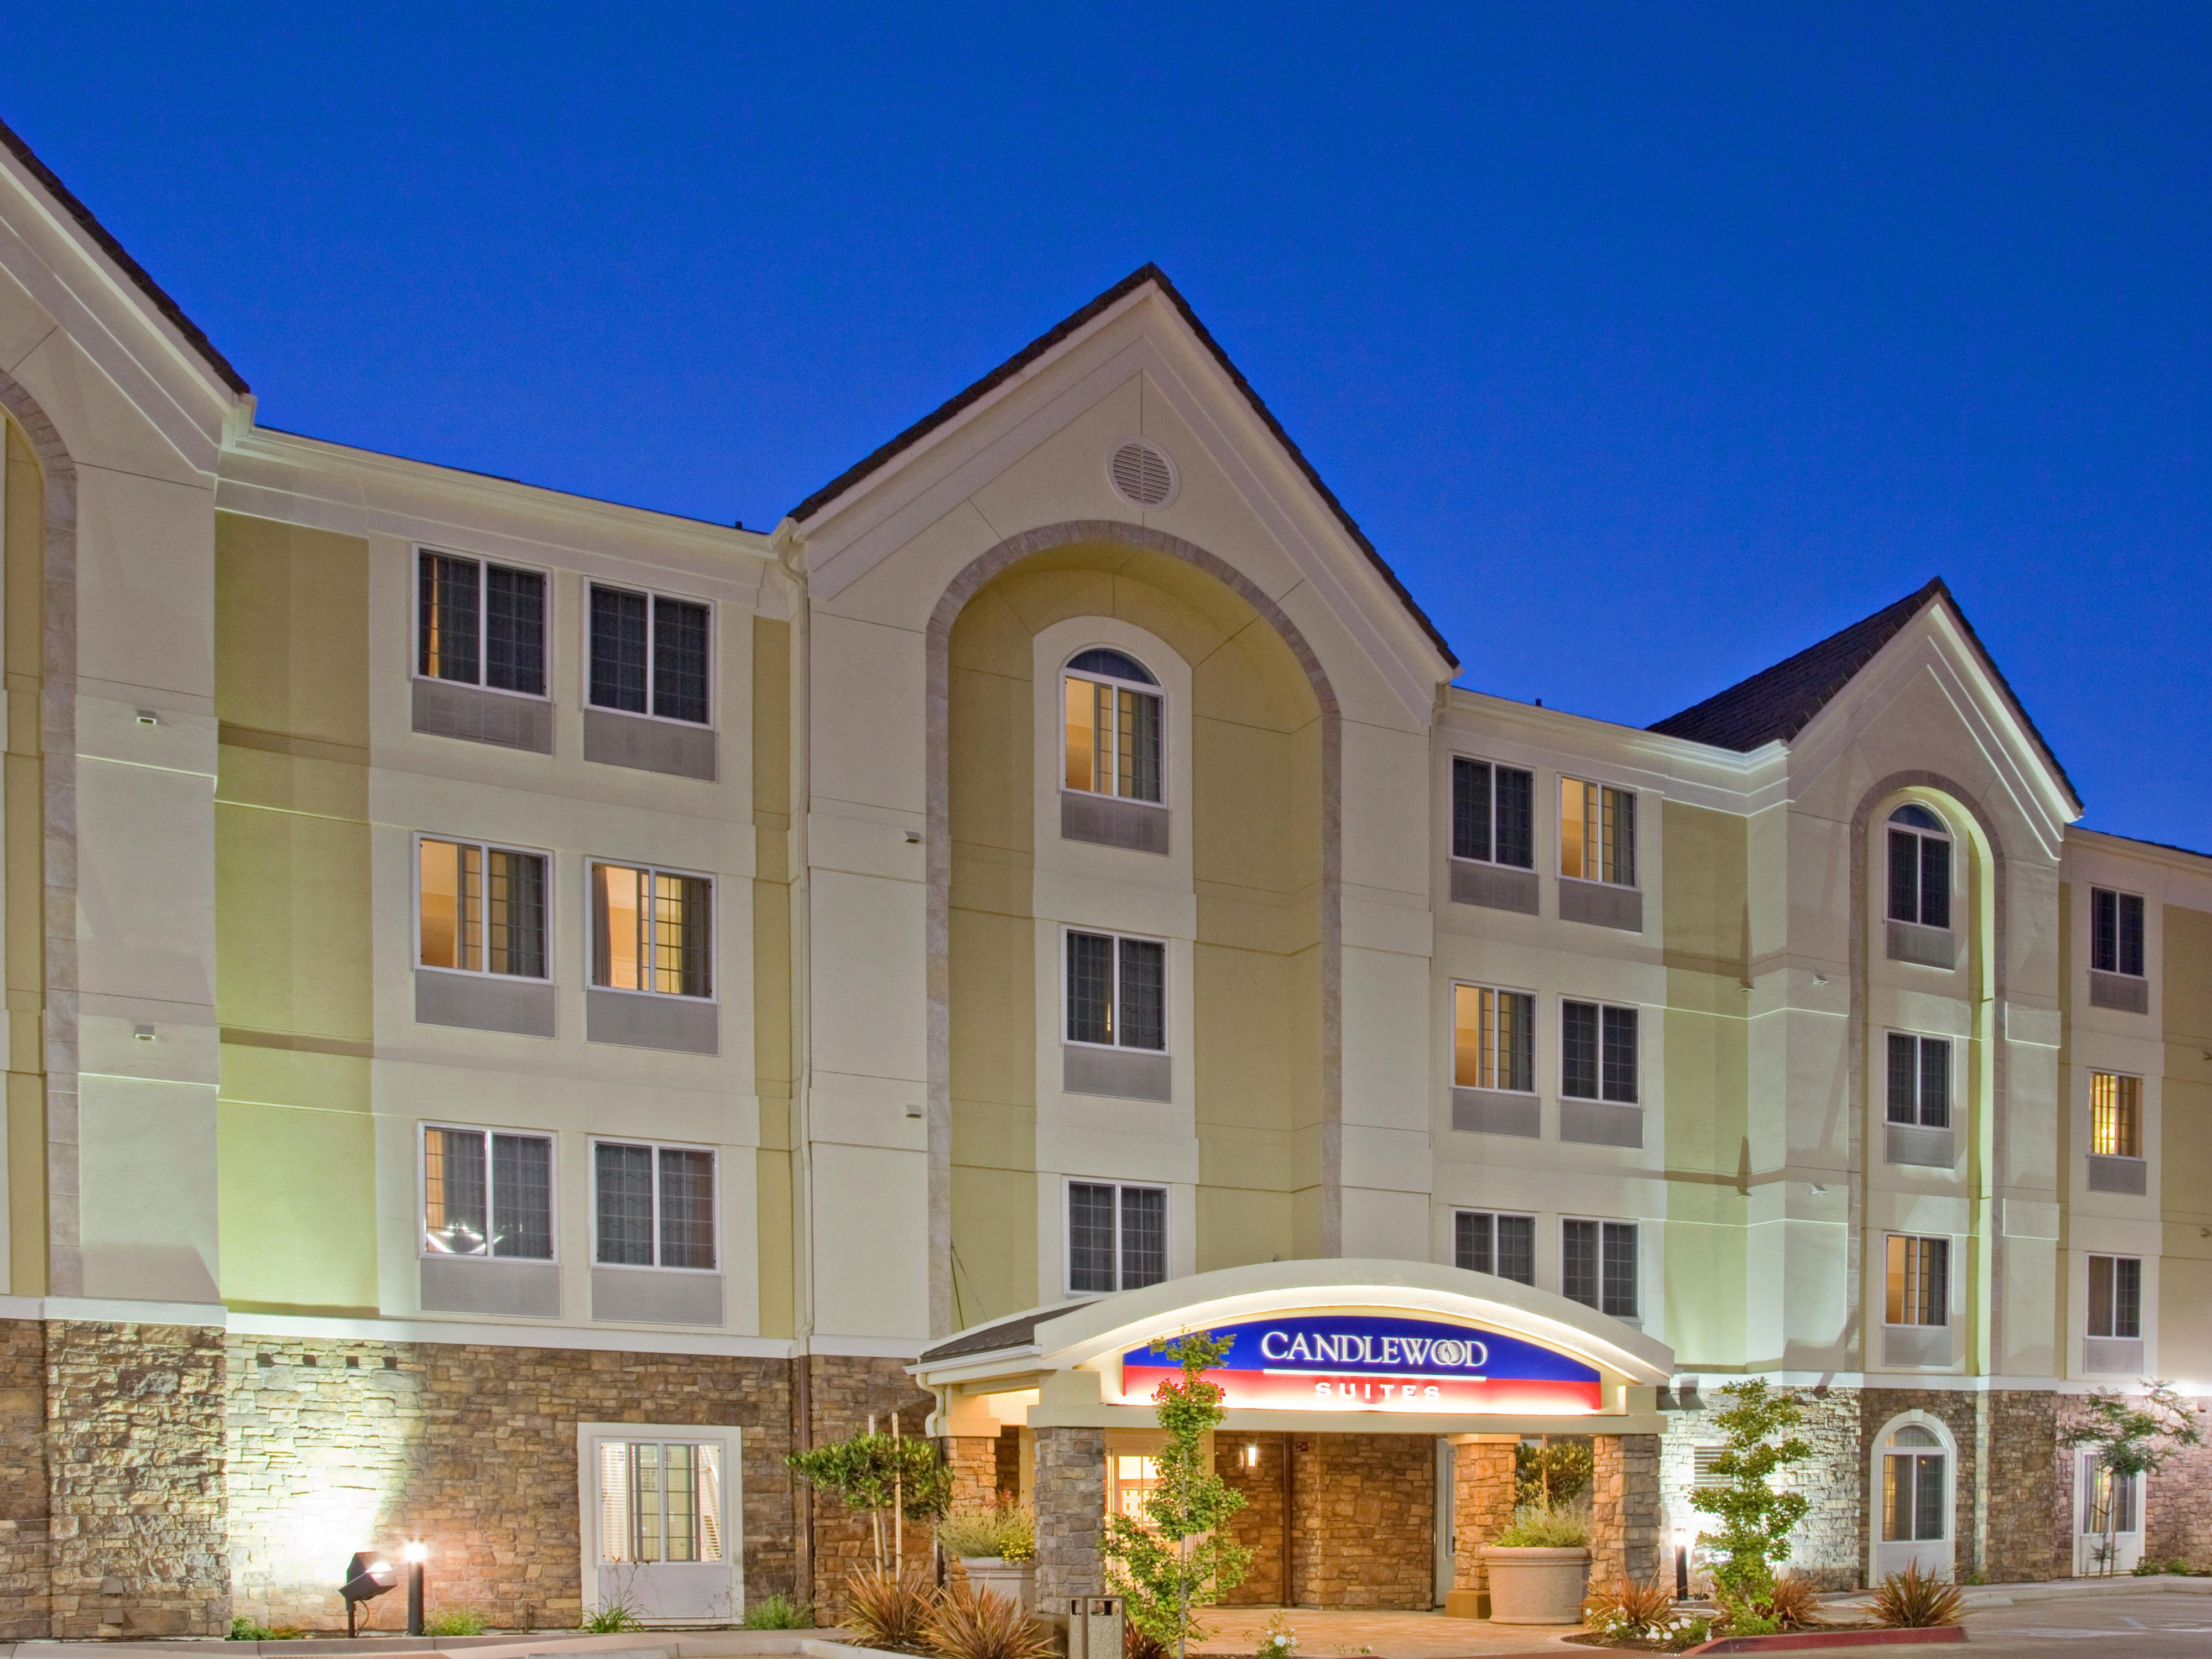 Santa Maria Hotels Candlewood Suites Extended Stay Hotel In California